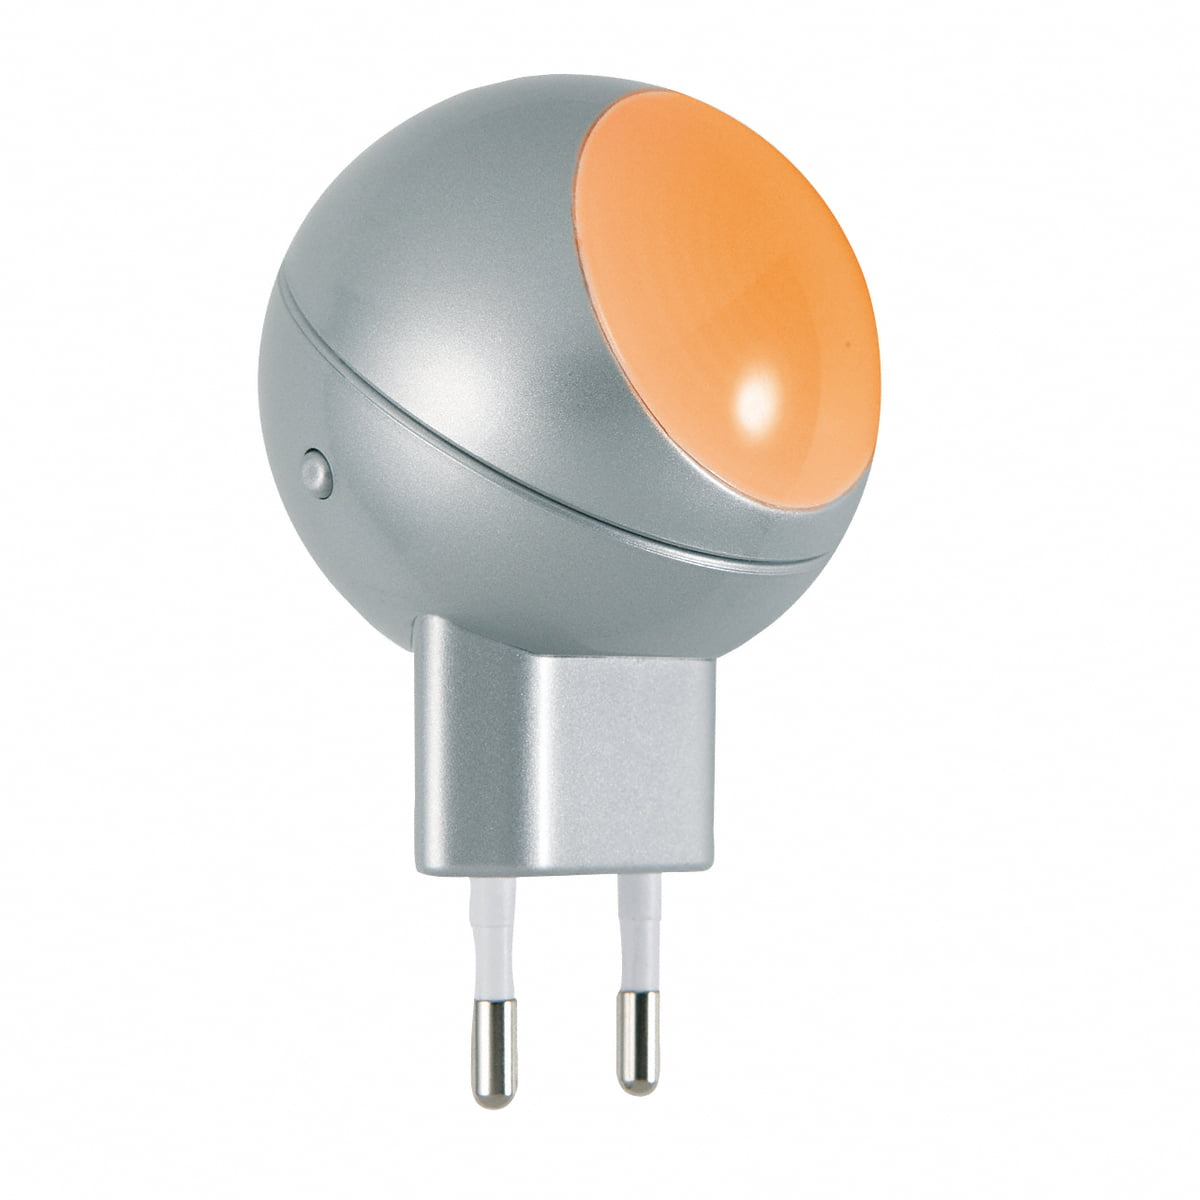 Osram Lunetta Colormix LED-Orientation Light